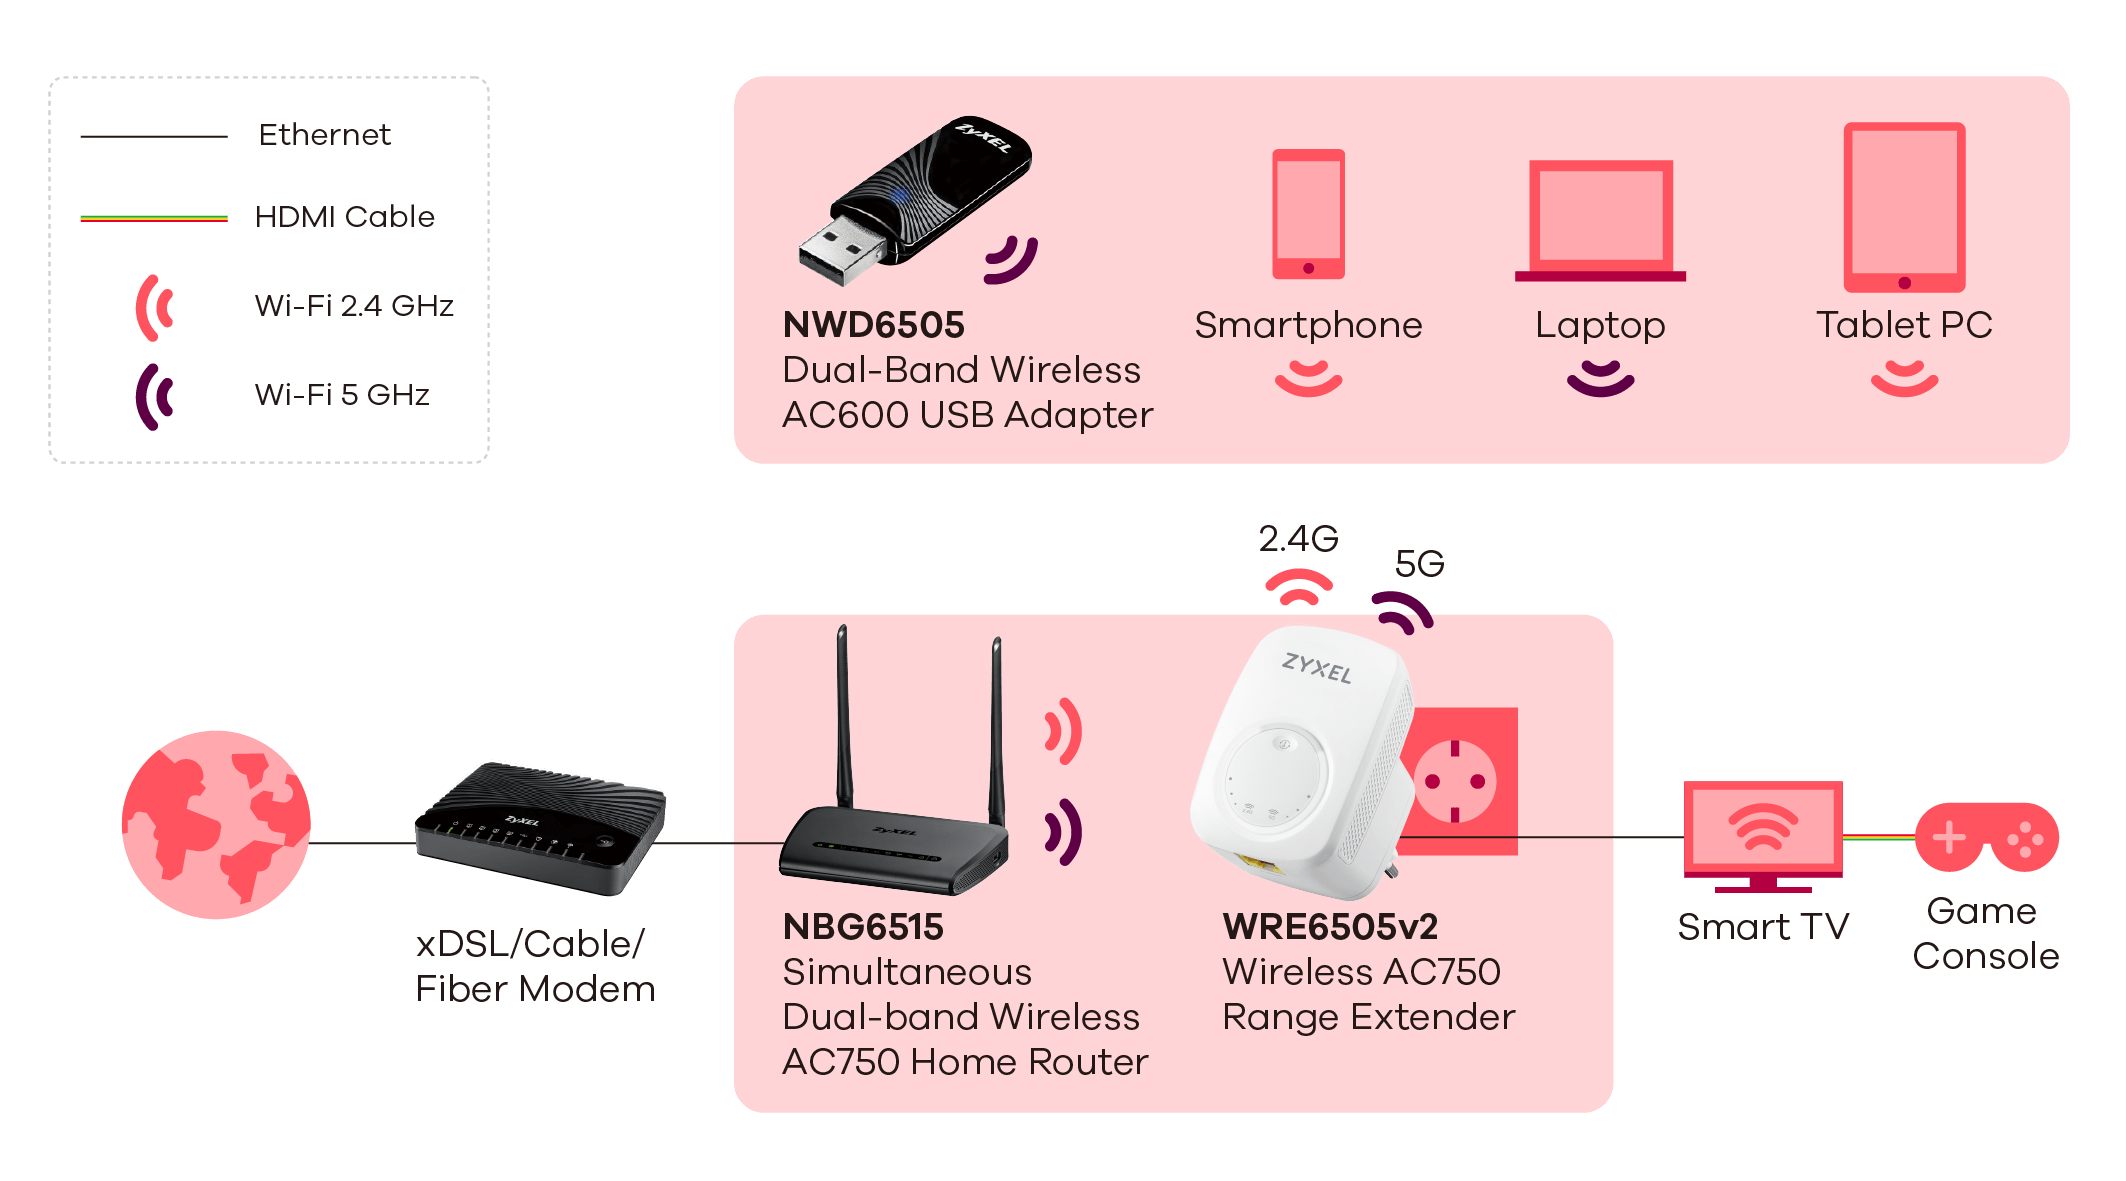 WRE6505 v2 Wireless AC750 Range Extender